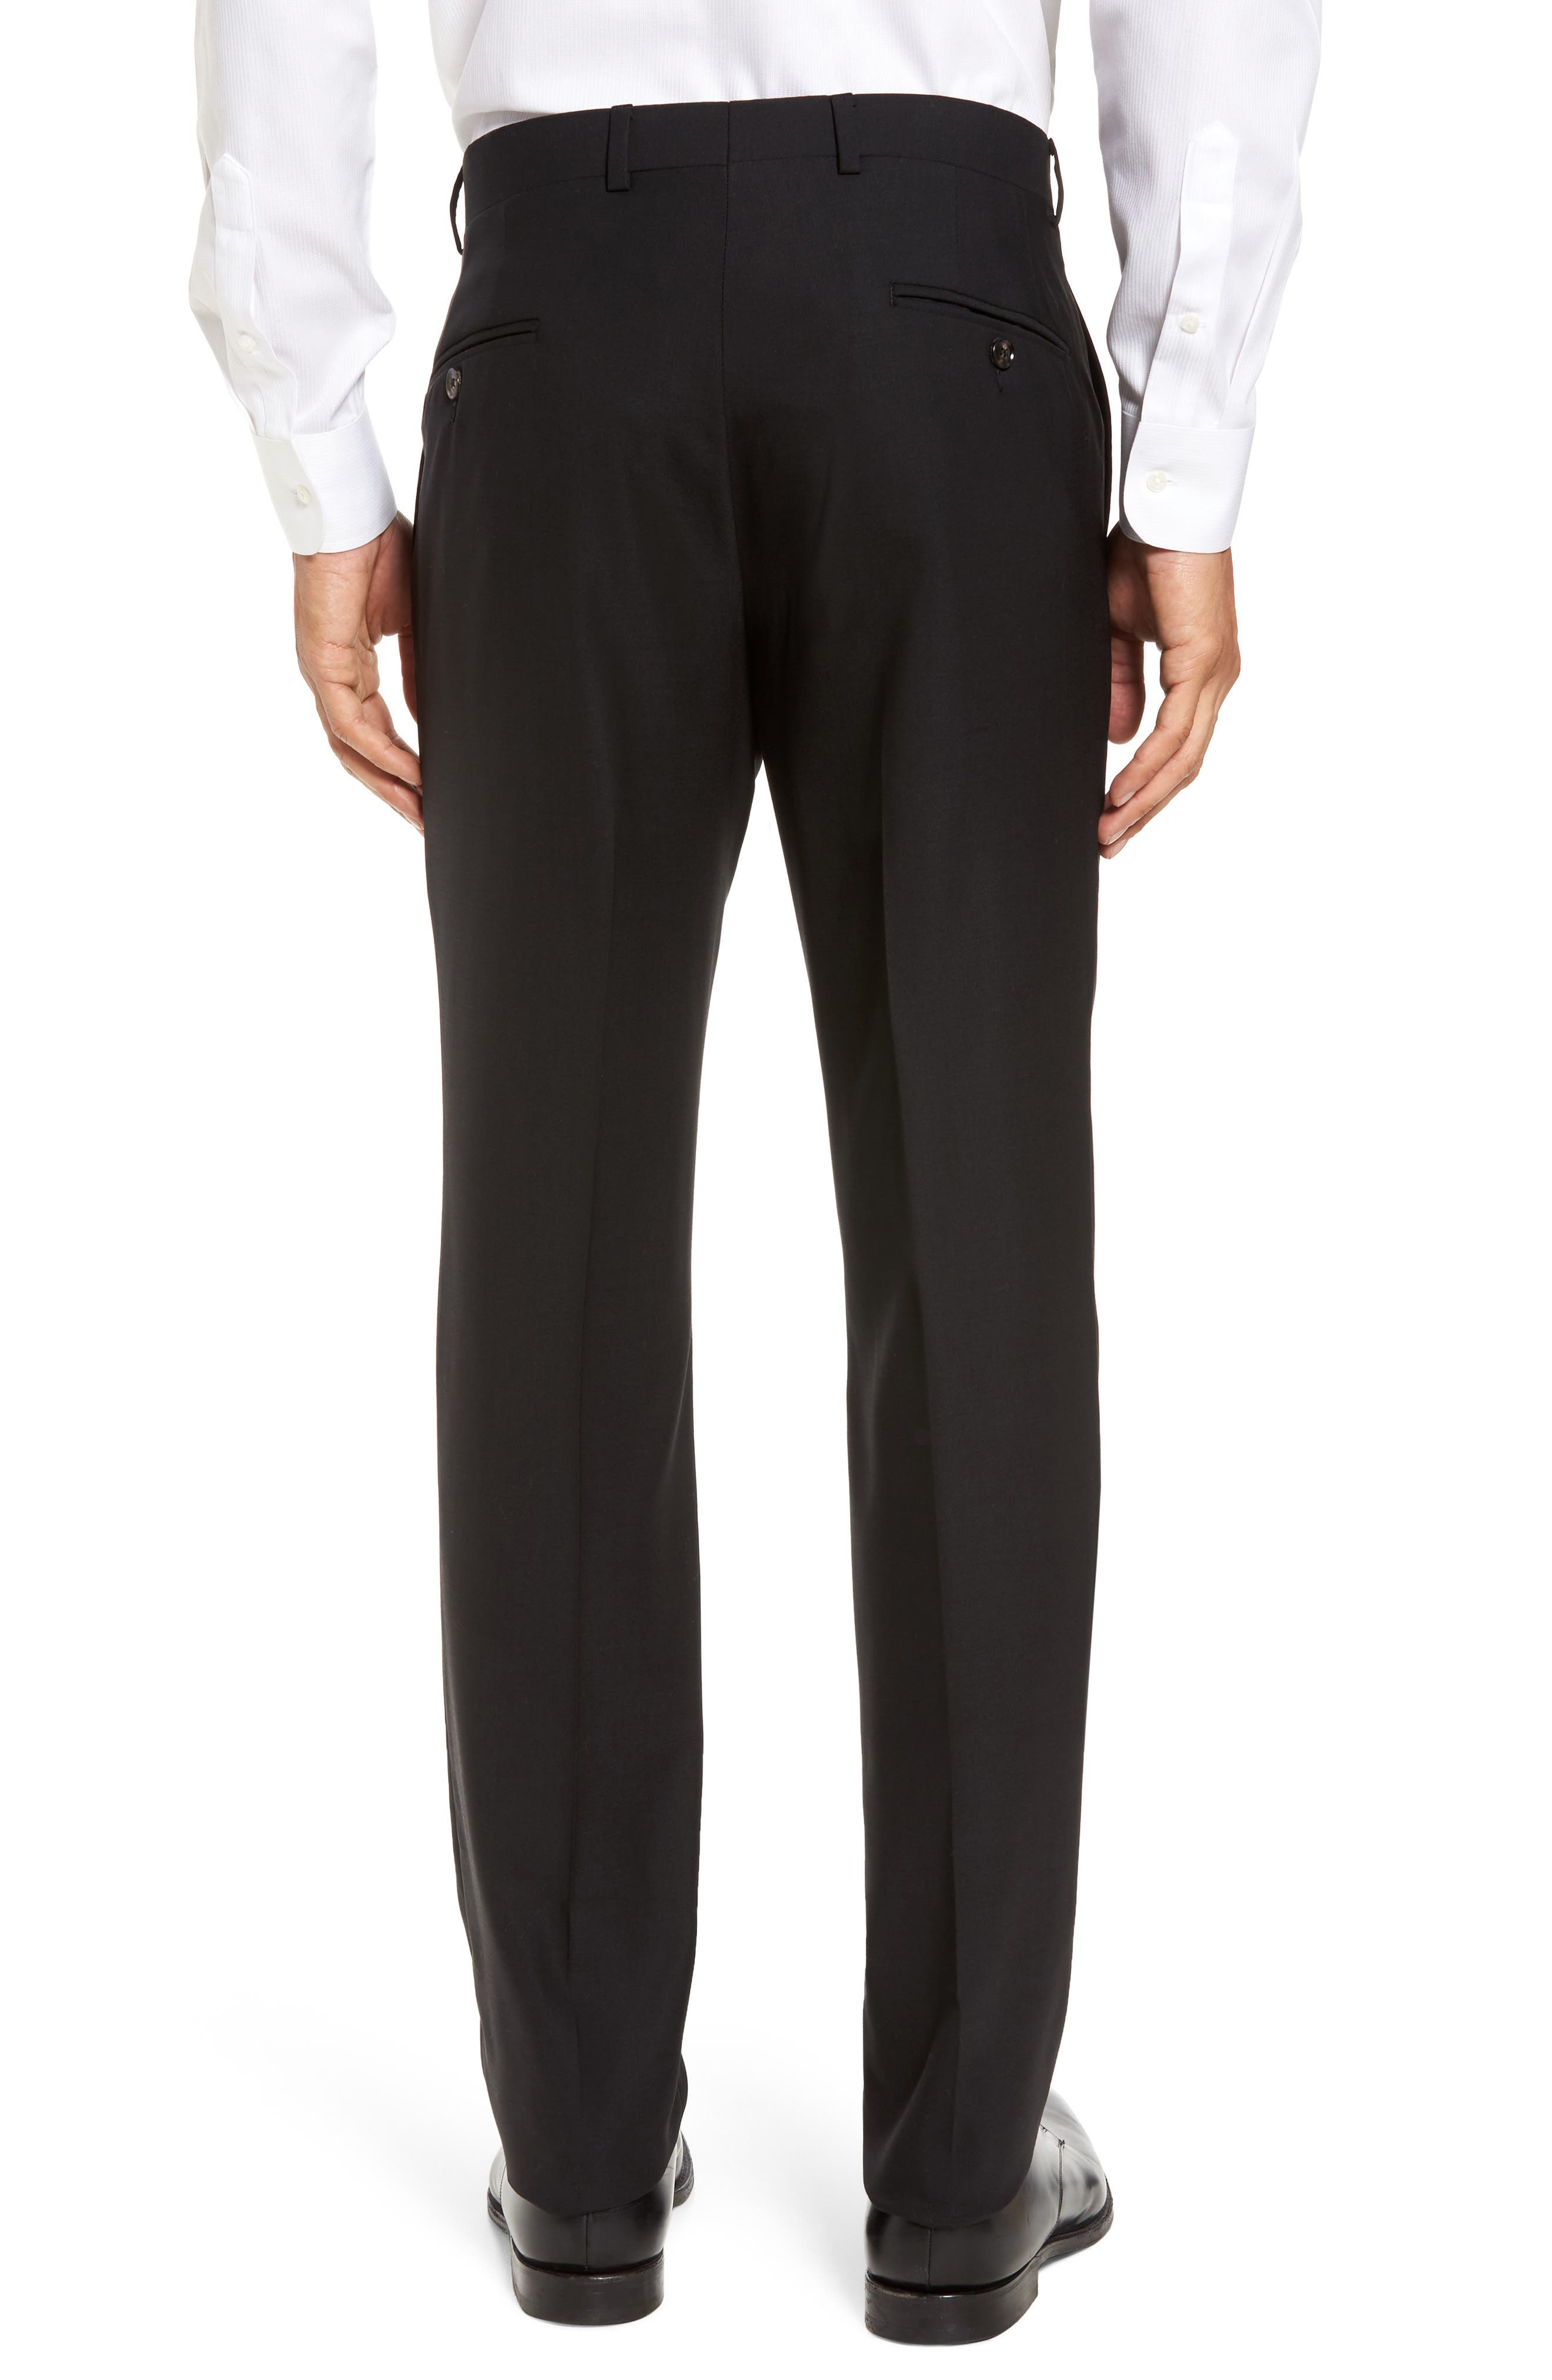 TED BAKER LONDON,                             Jefferson Flat Front Solid Wool Trousers,                             Alternate thumbnail 3, color,                             BLACK